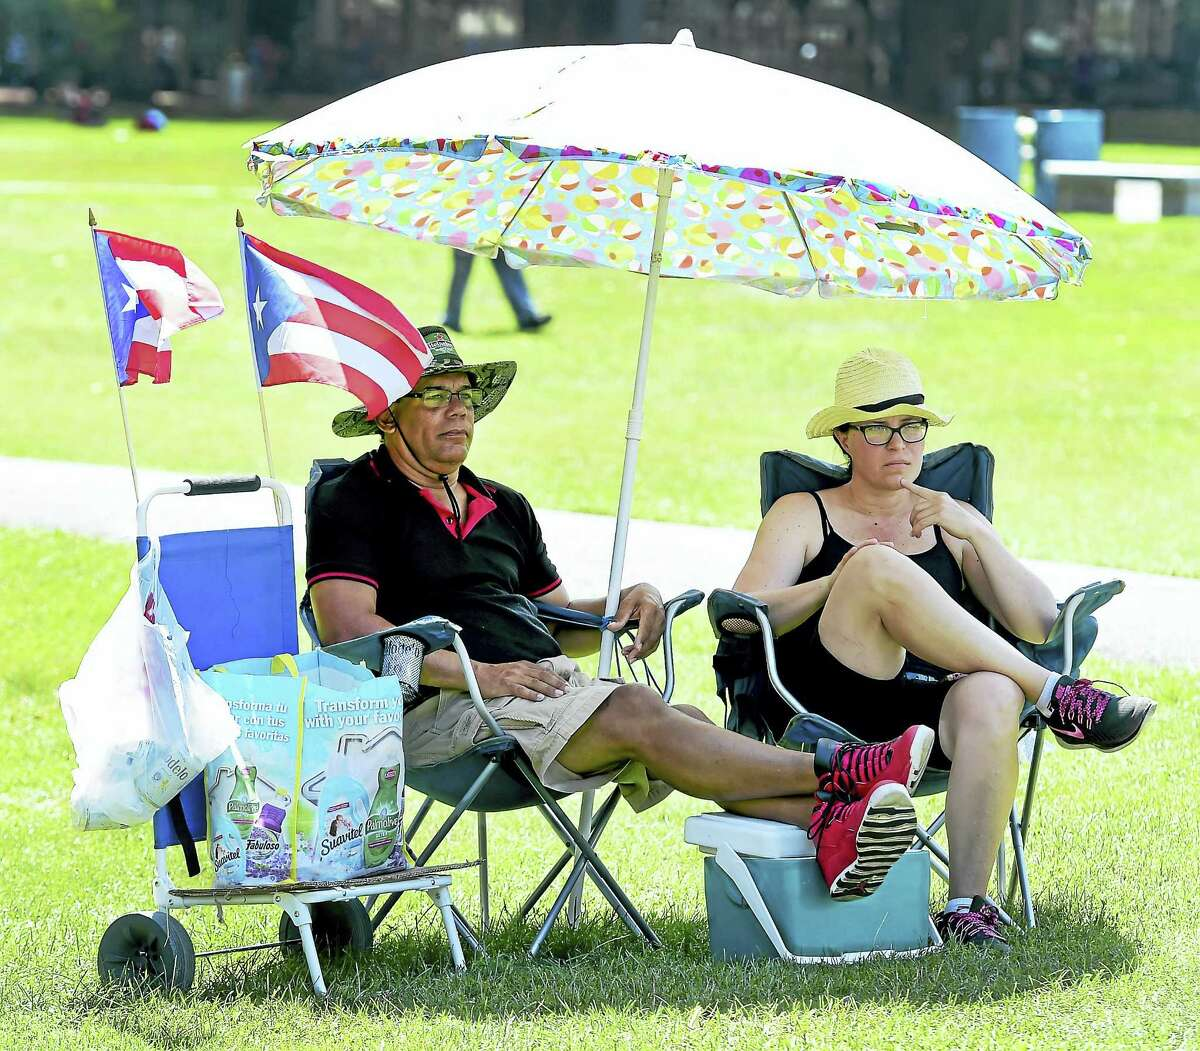 Luis Nieves, left, and friend Milagron Rios, on the New Haven Green Saturday, Aug. 13, 2016 during the Puerto Ricans United Inc. presentation of Fiestas Patronales de New Haven, a Puerto Rican Festival honoring the City of San Juan on the New Haven Green.